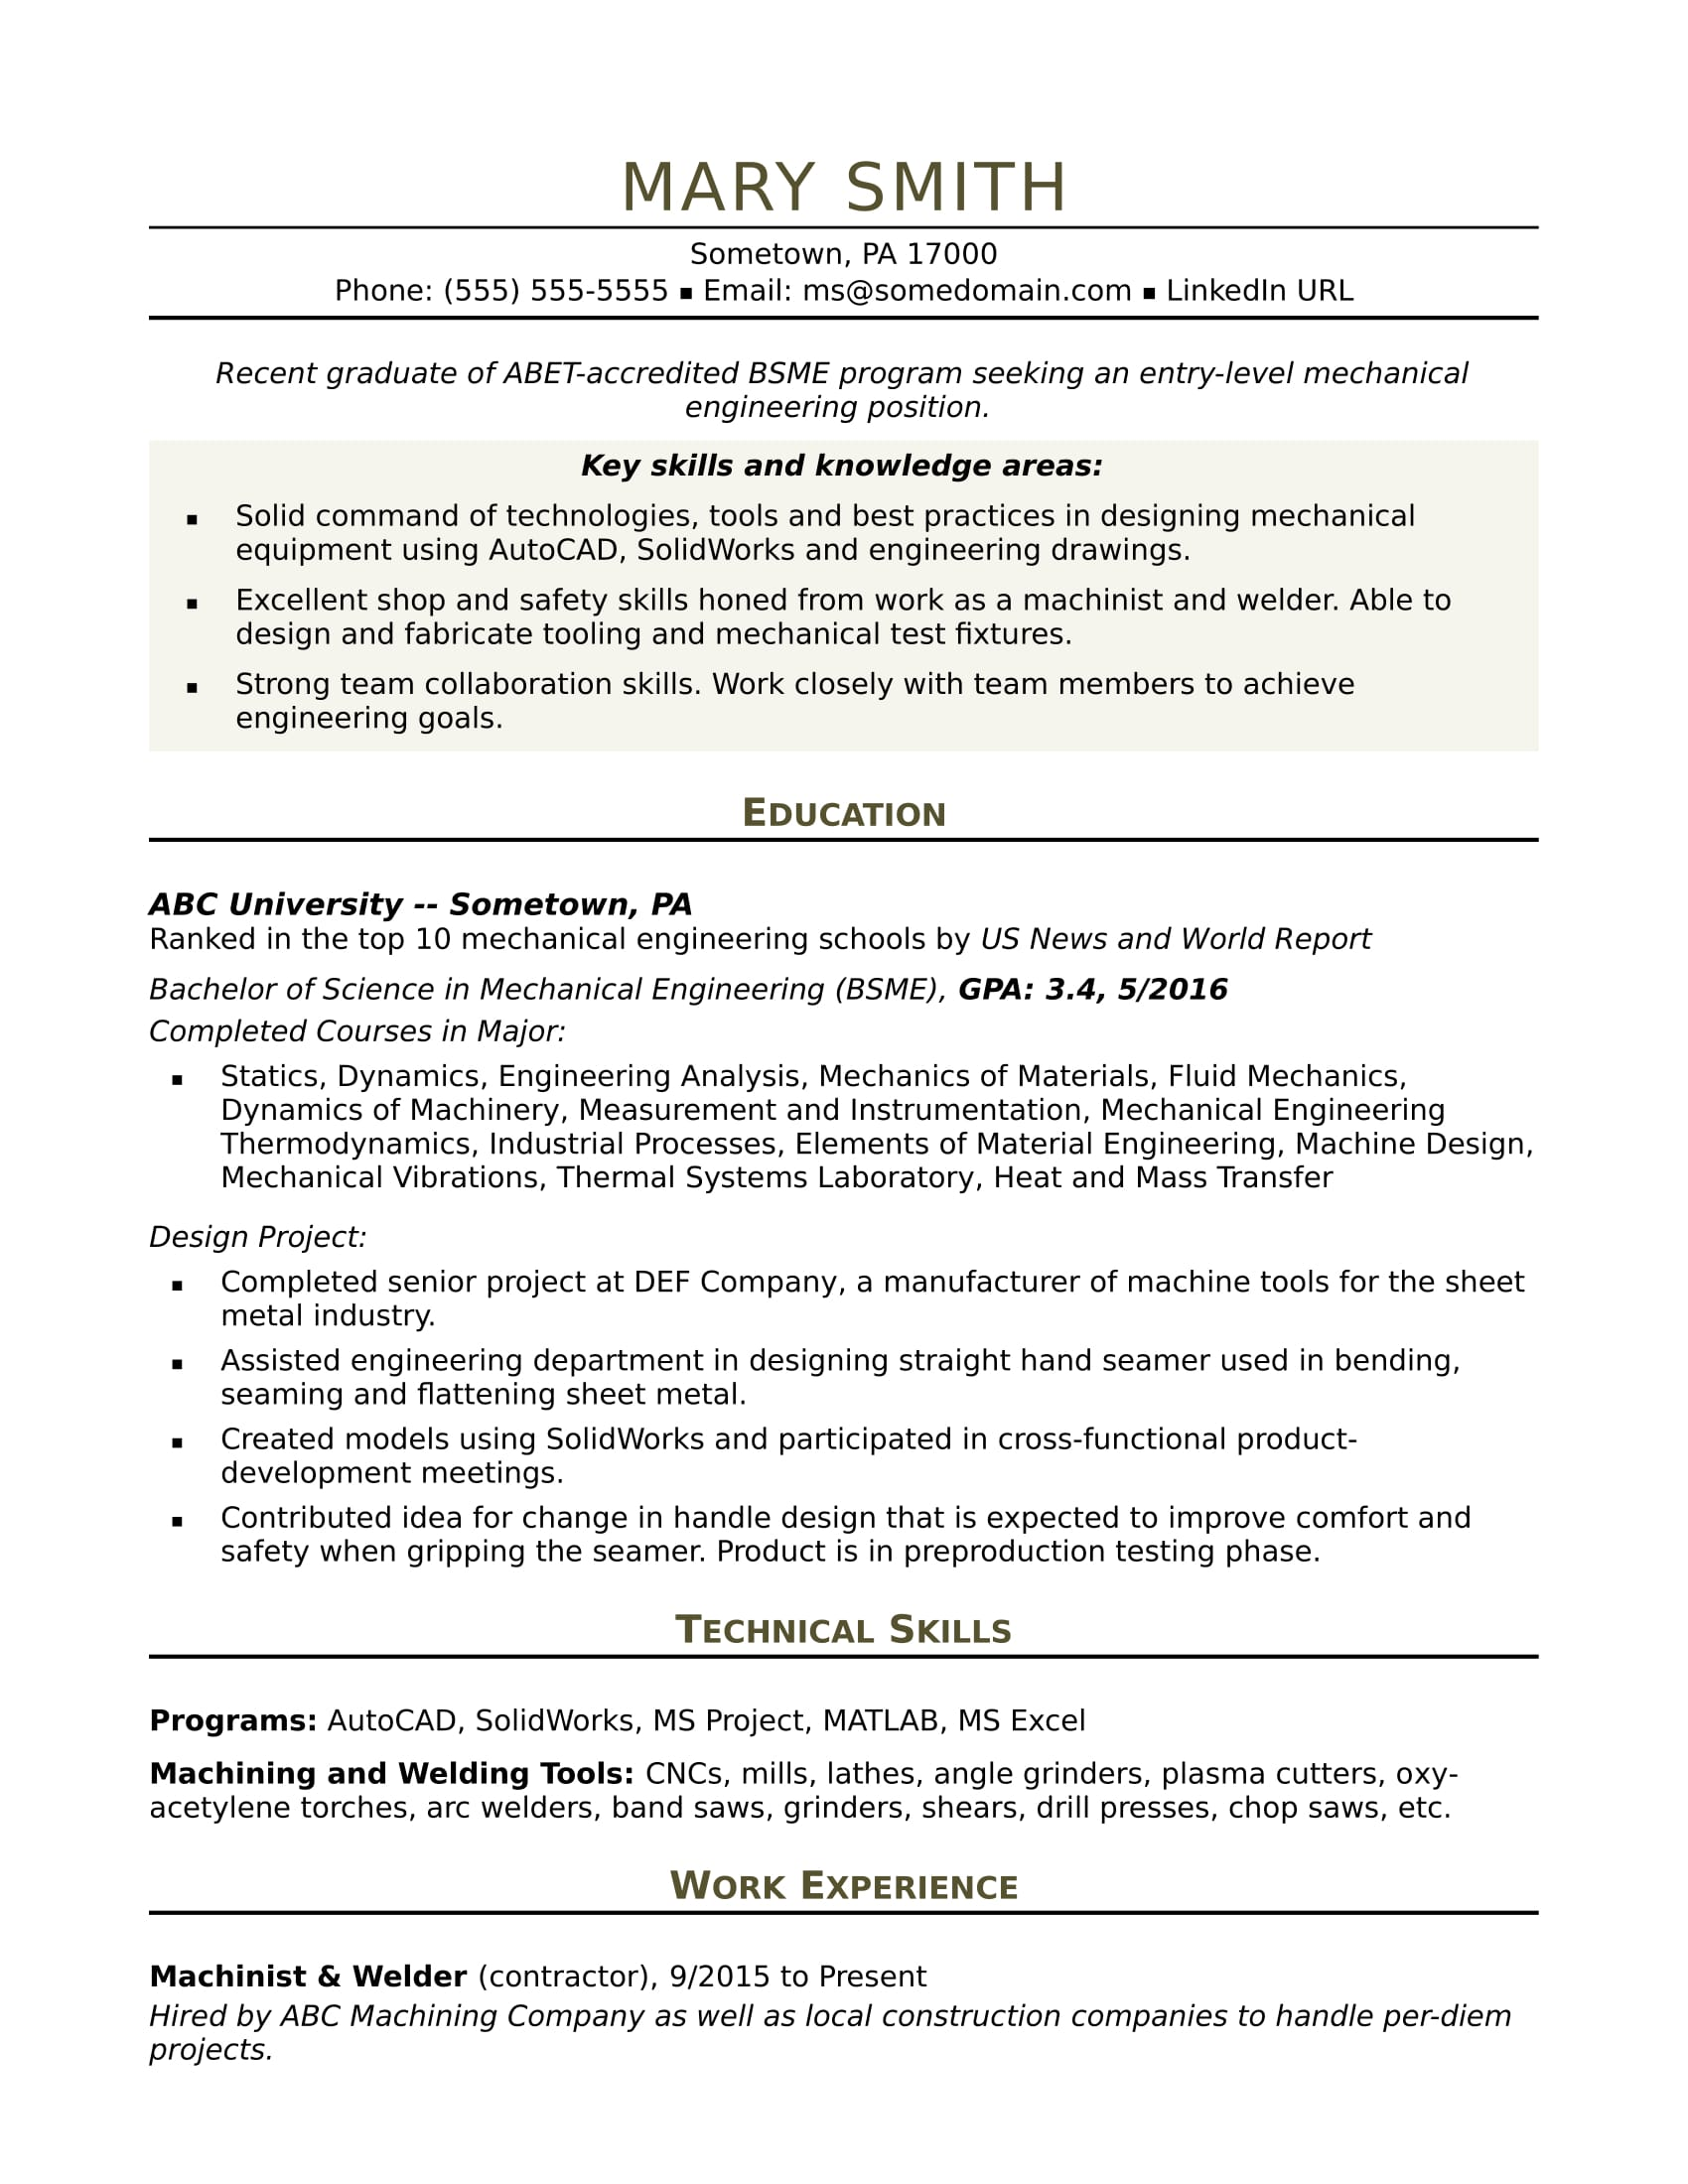 sample resume for an entry level mechanical engineer monster engineering format dietitian Resume Engineering Resume Format